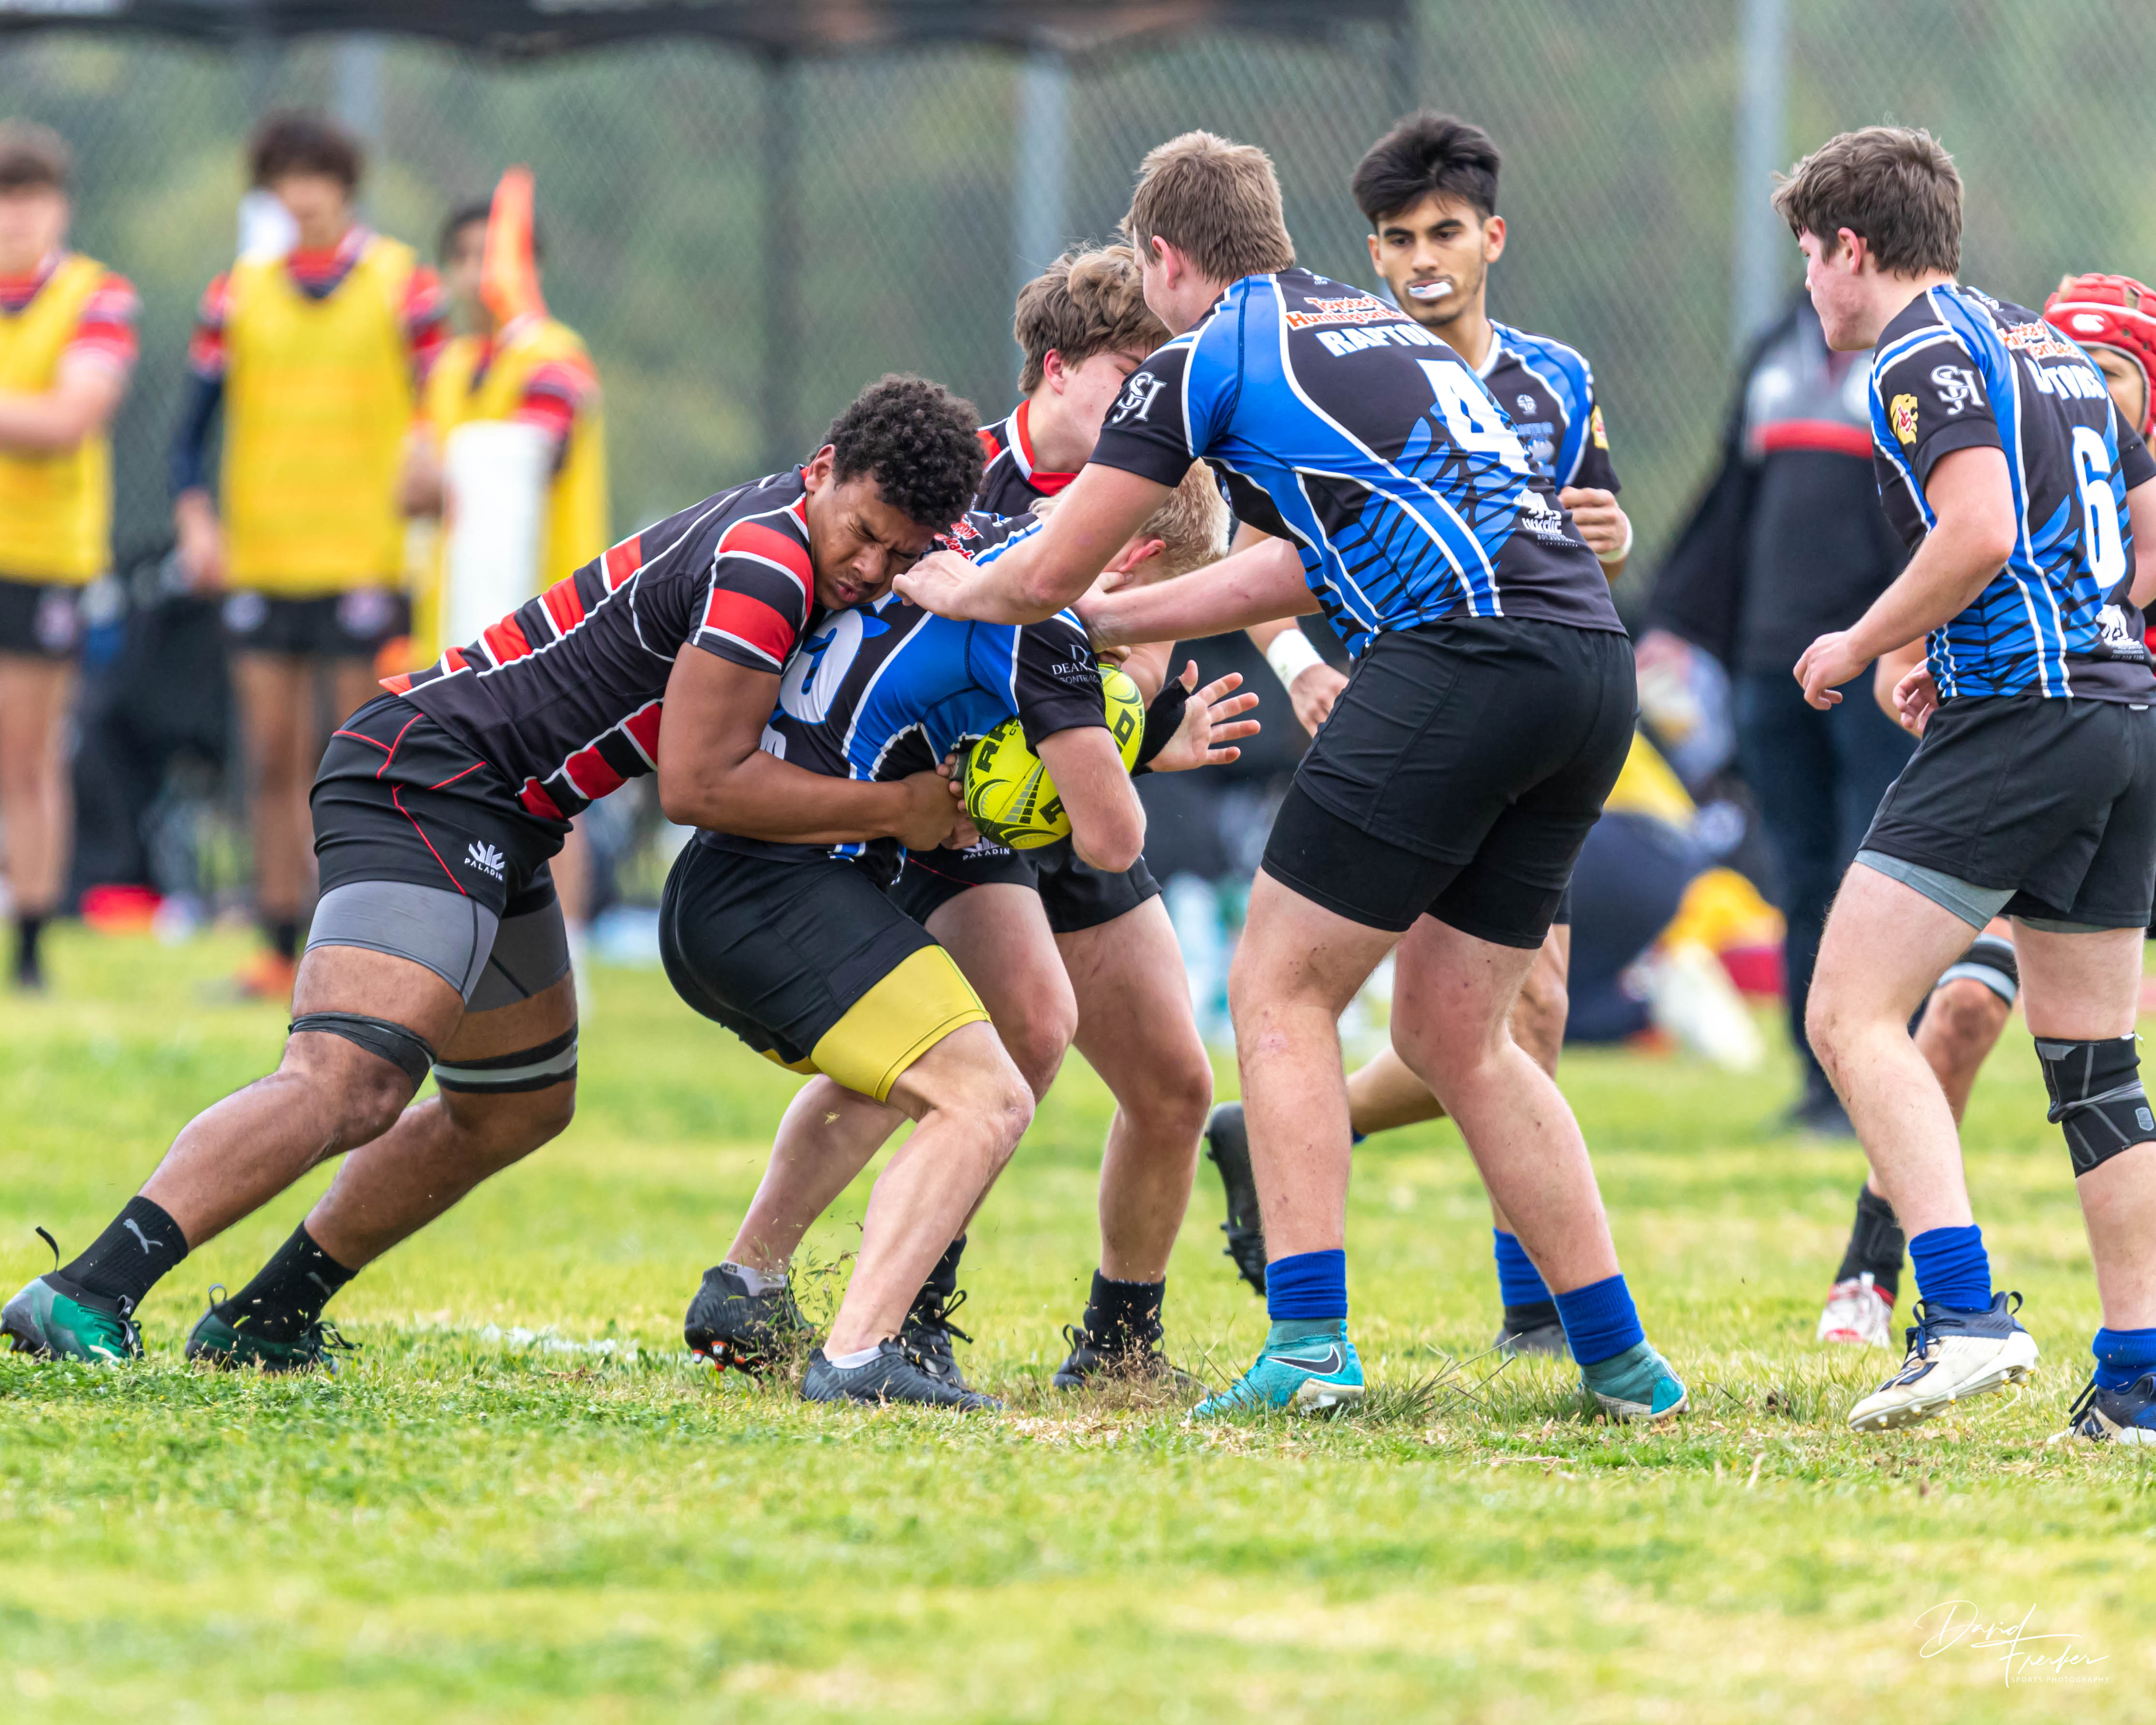 LaJollaRugby25